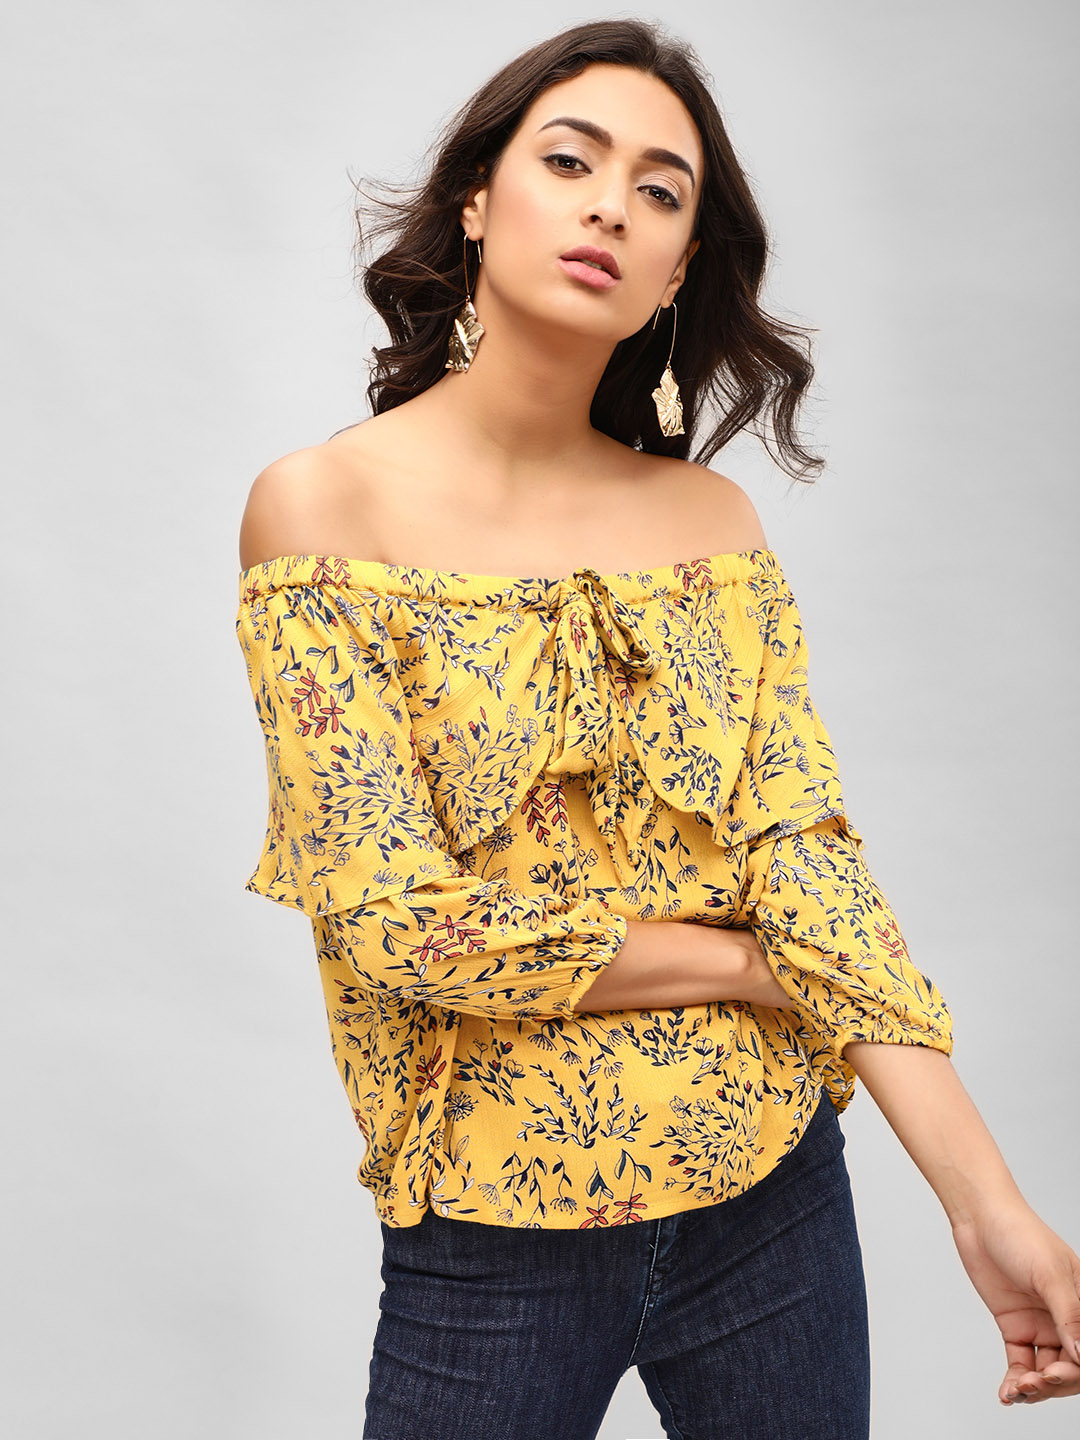 MIWAY Print Layered & Printed Off-Shoulder Top 1